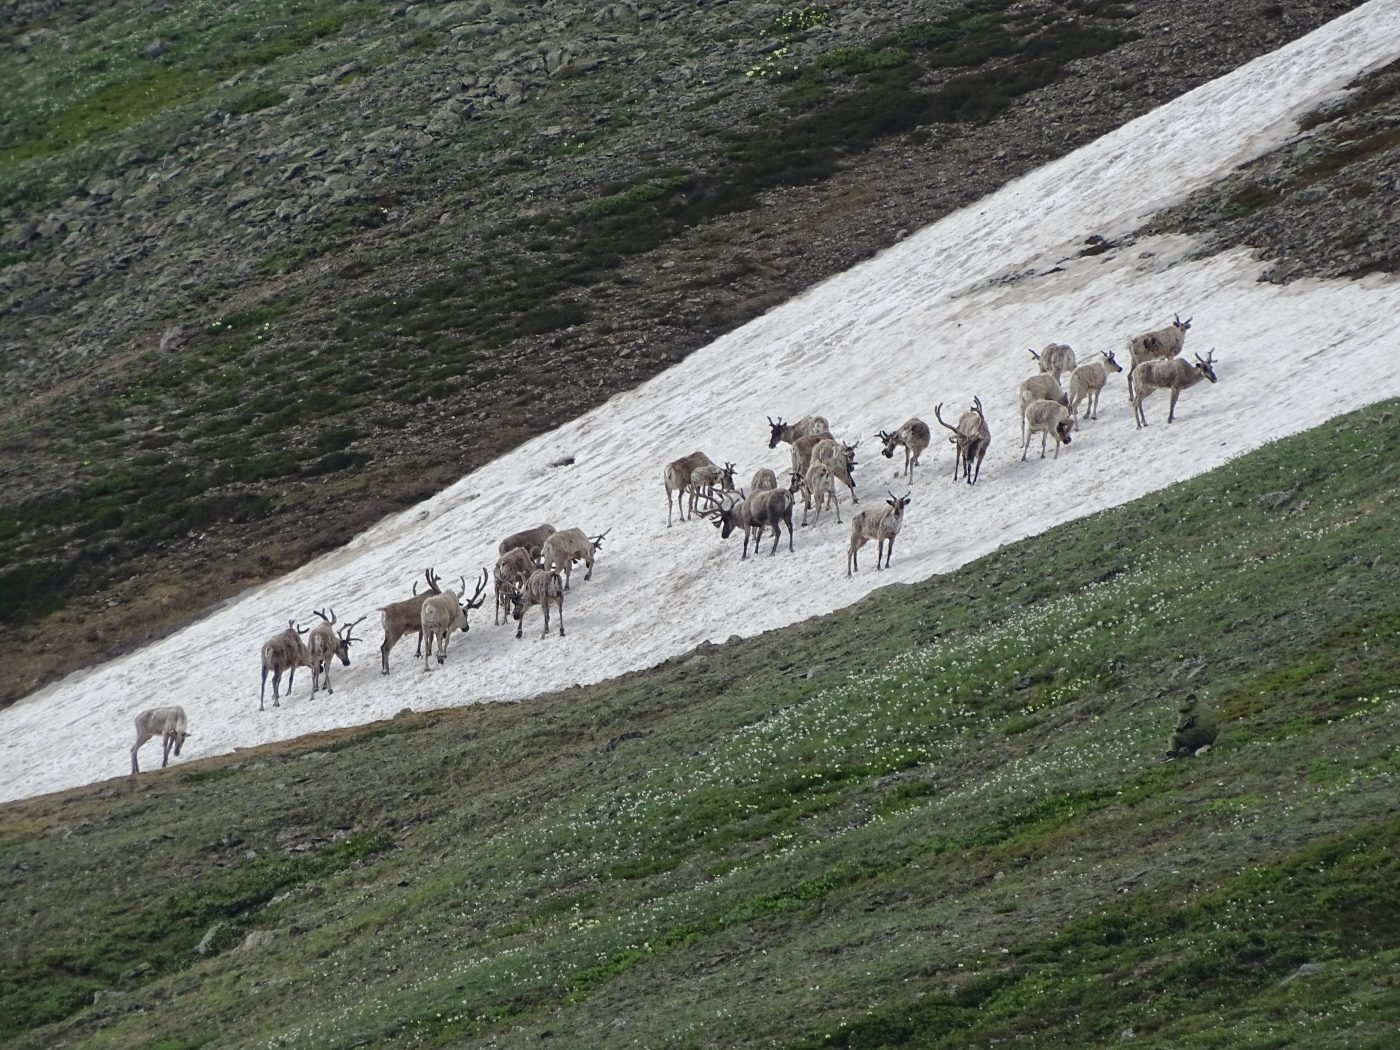 The expedition on recording number of wild reindeer took place